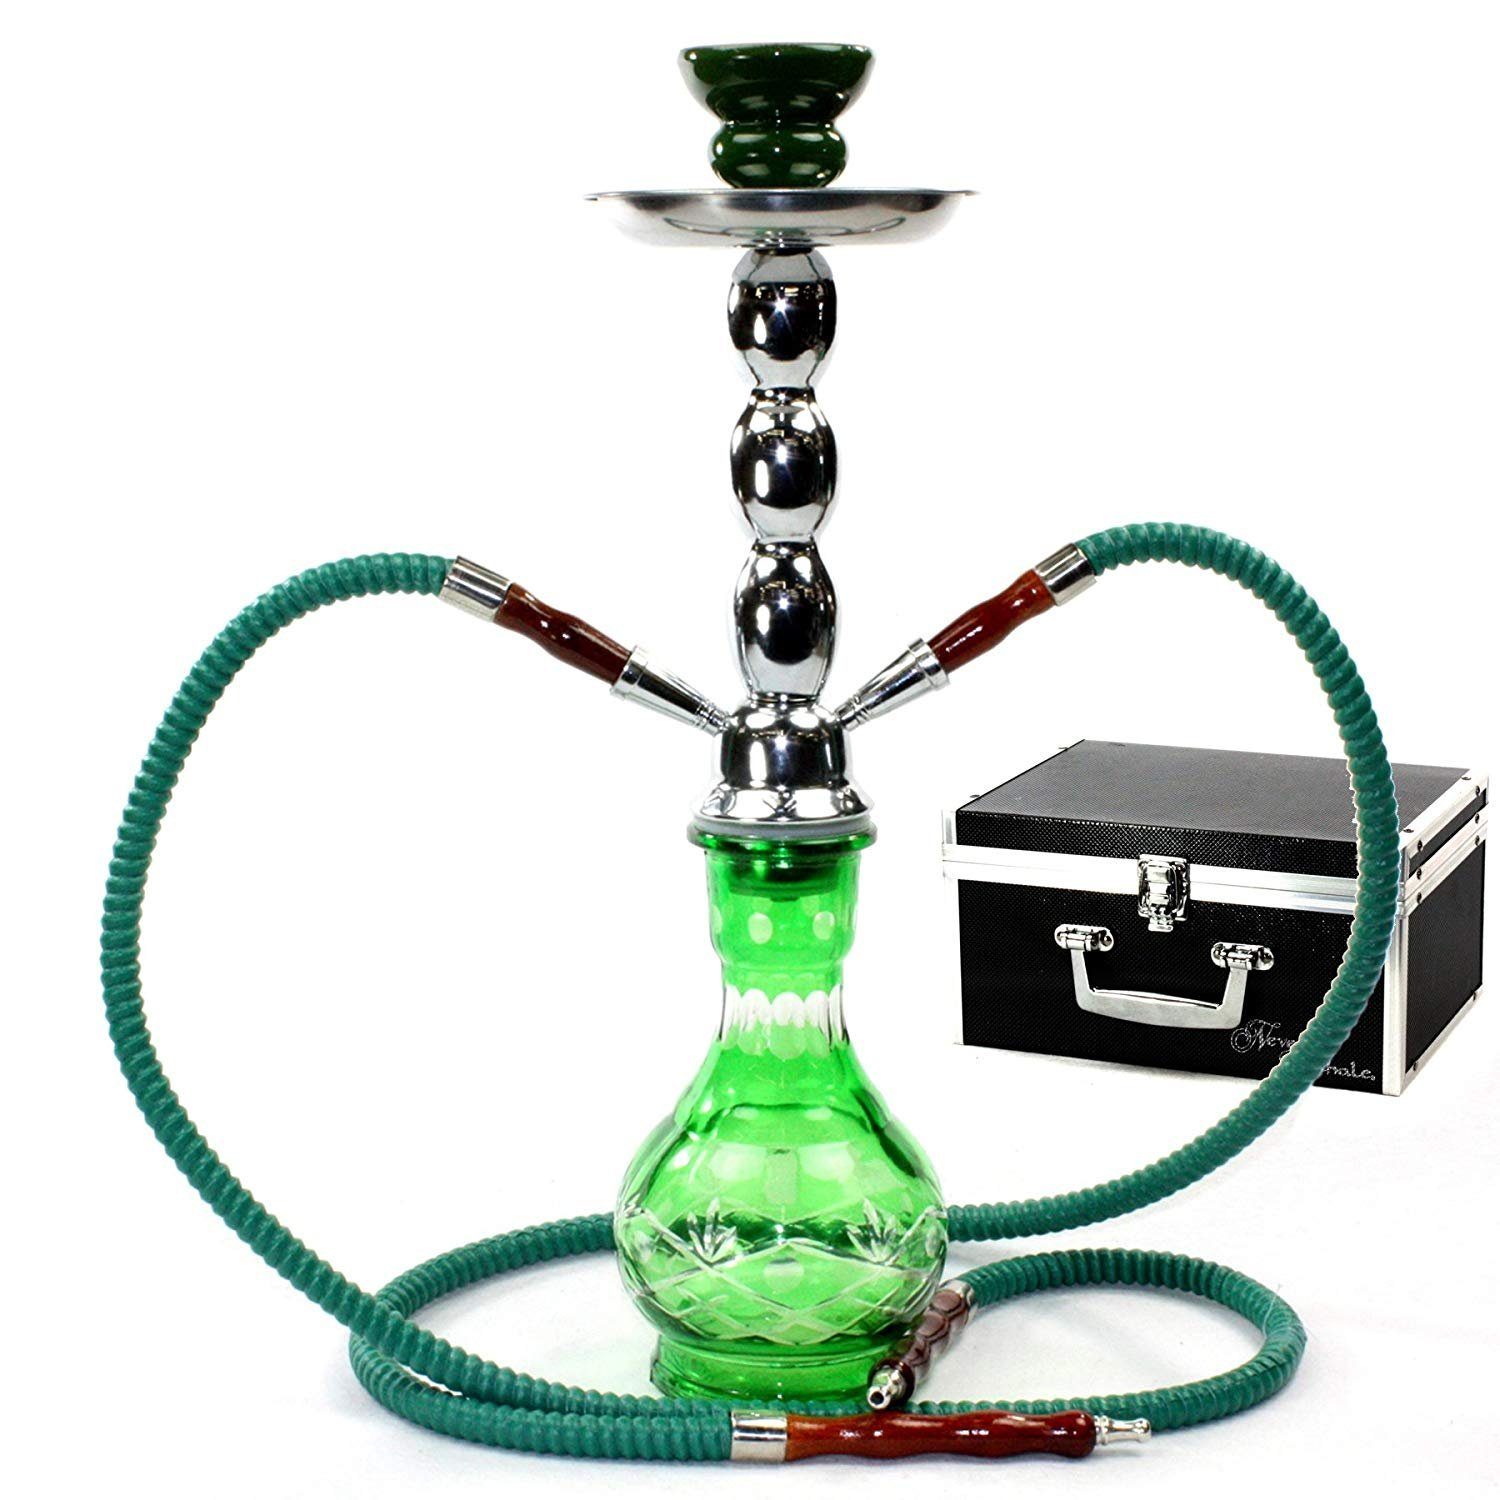 GSTAR Deluxe Series: 18'' 2 Hose Hookah Complete Set w/Travel Case - (Spring Green)